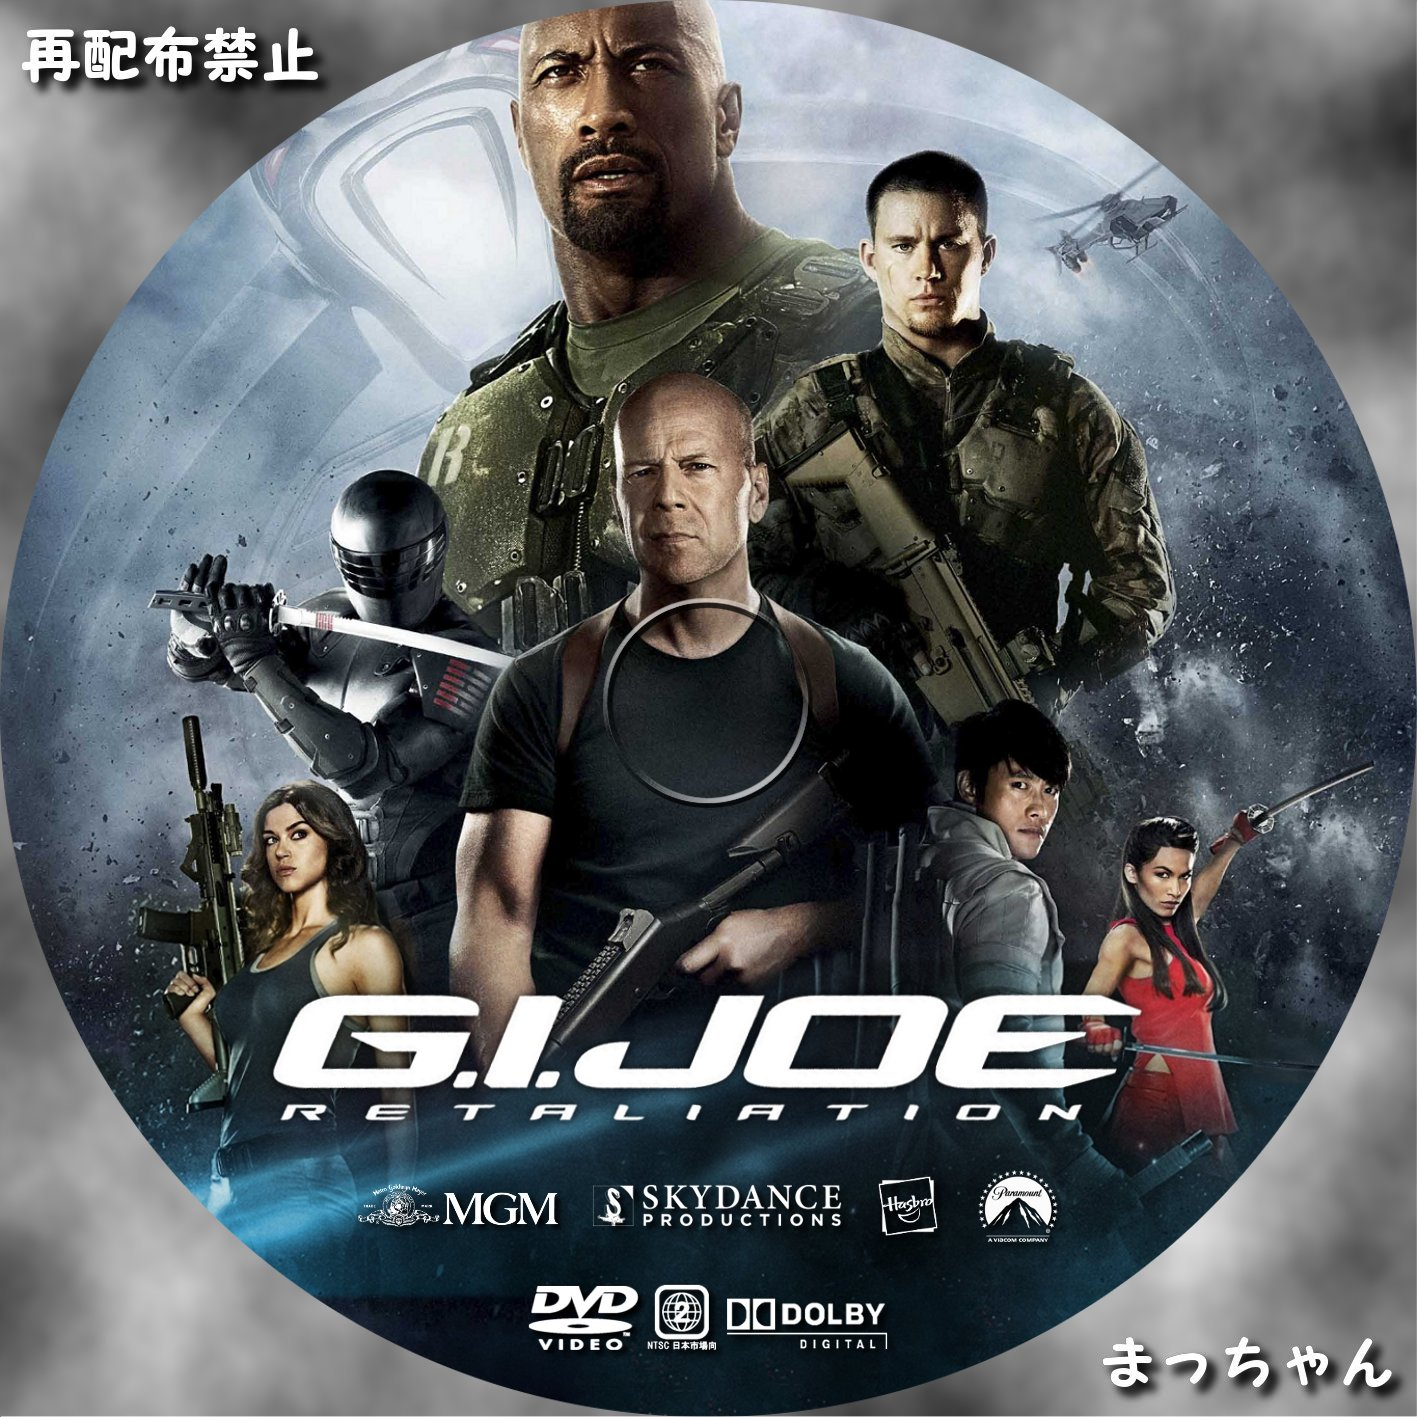 Gi joe dvd coupon